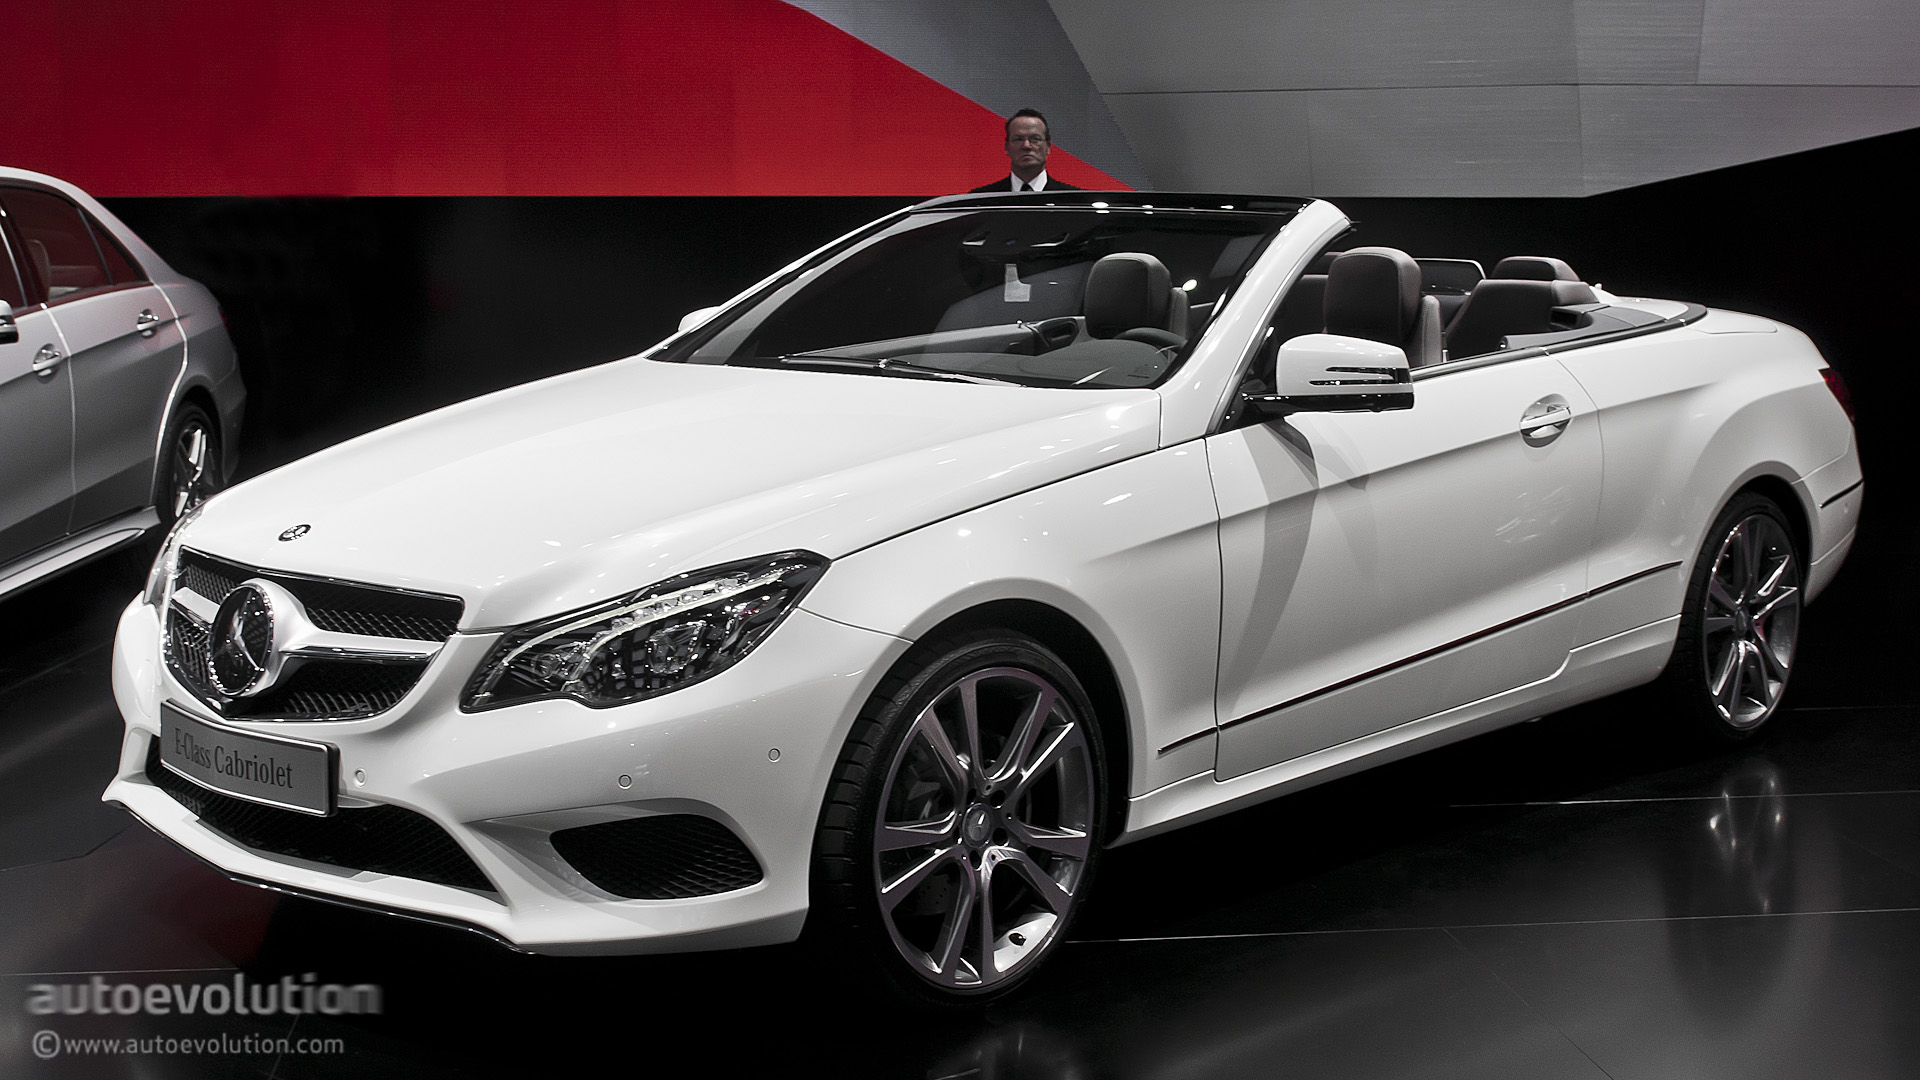 2013 naias mercedes benz e class cabriolet live photos autoevolution. Black Bedroom Furniture Sets. Home Design Ideas